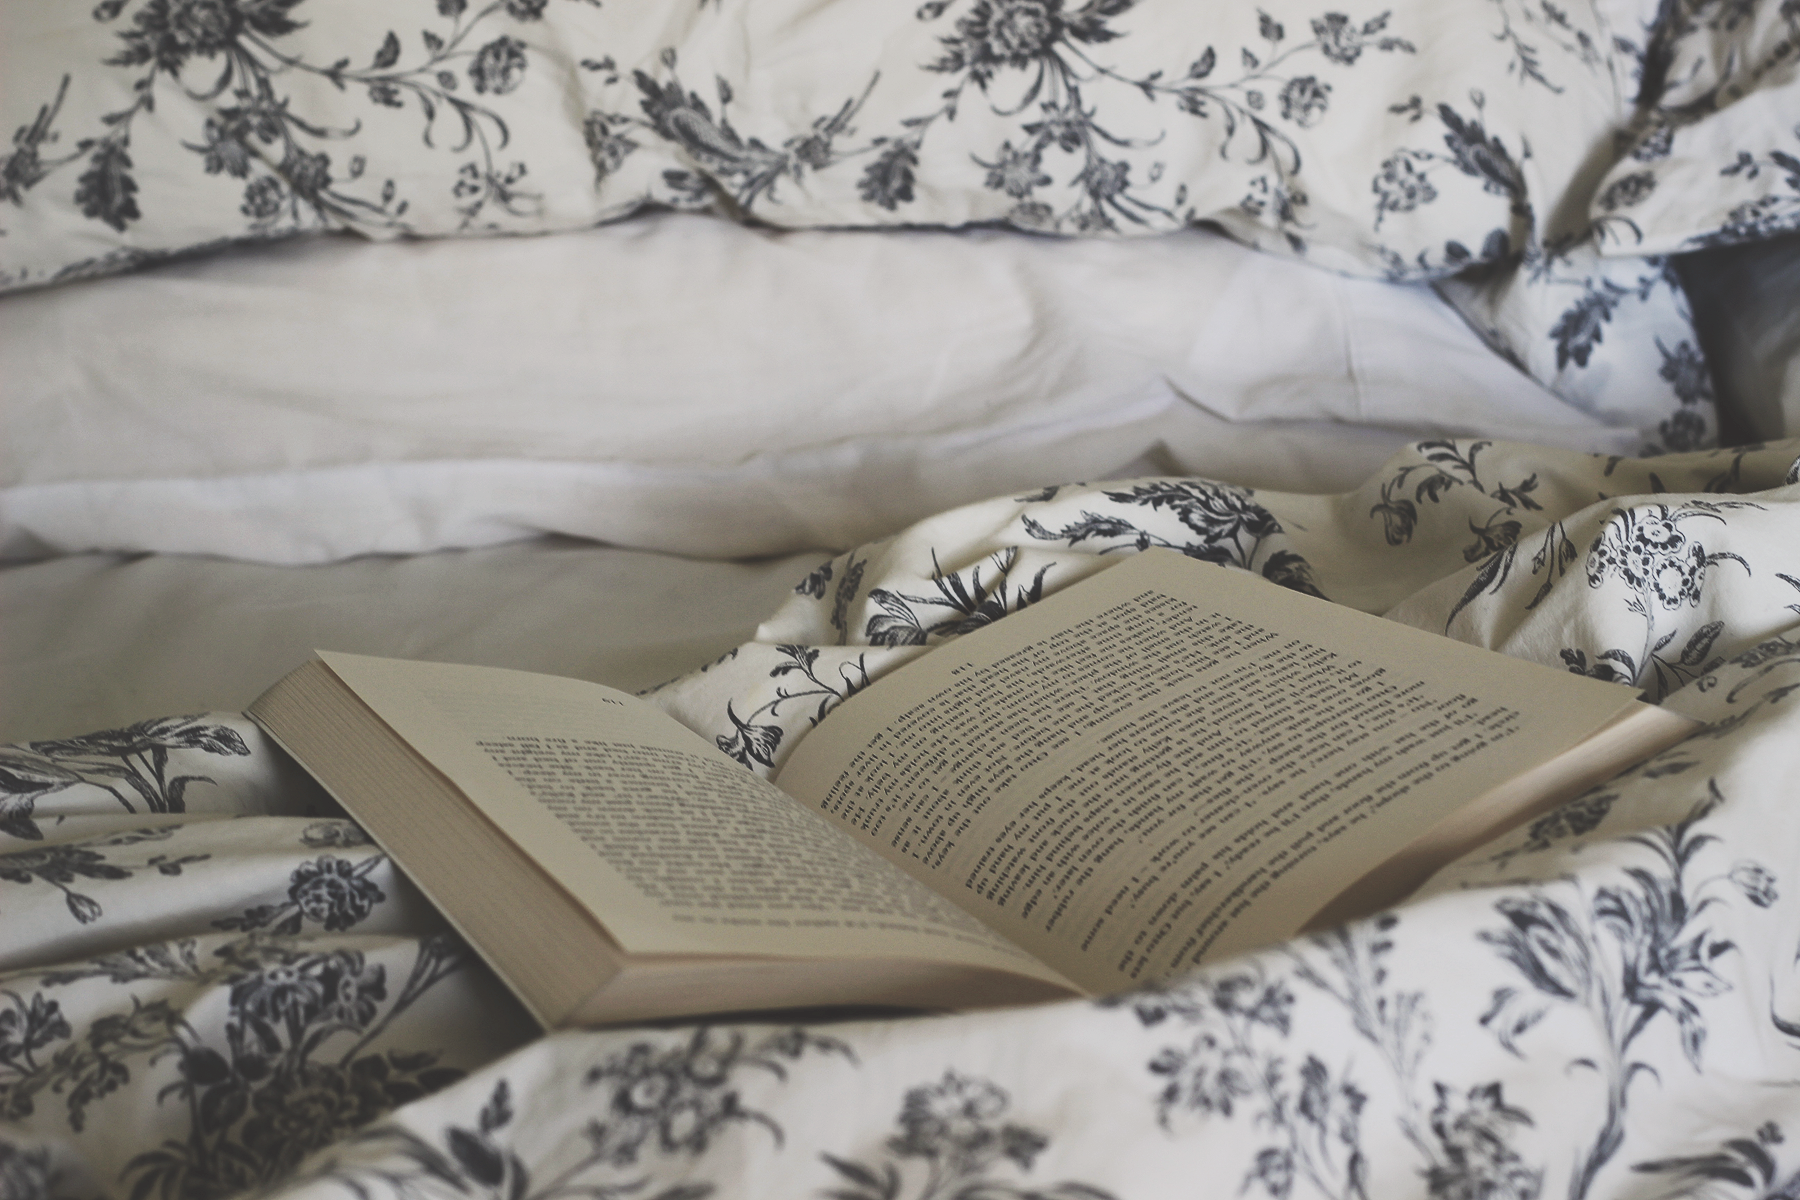 Cosy, Bramble and Thorn, Rain, Storm, Winter, Reading, Bed, Book, Tea